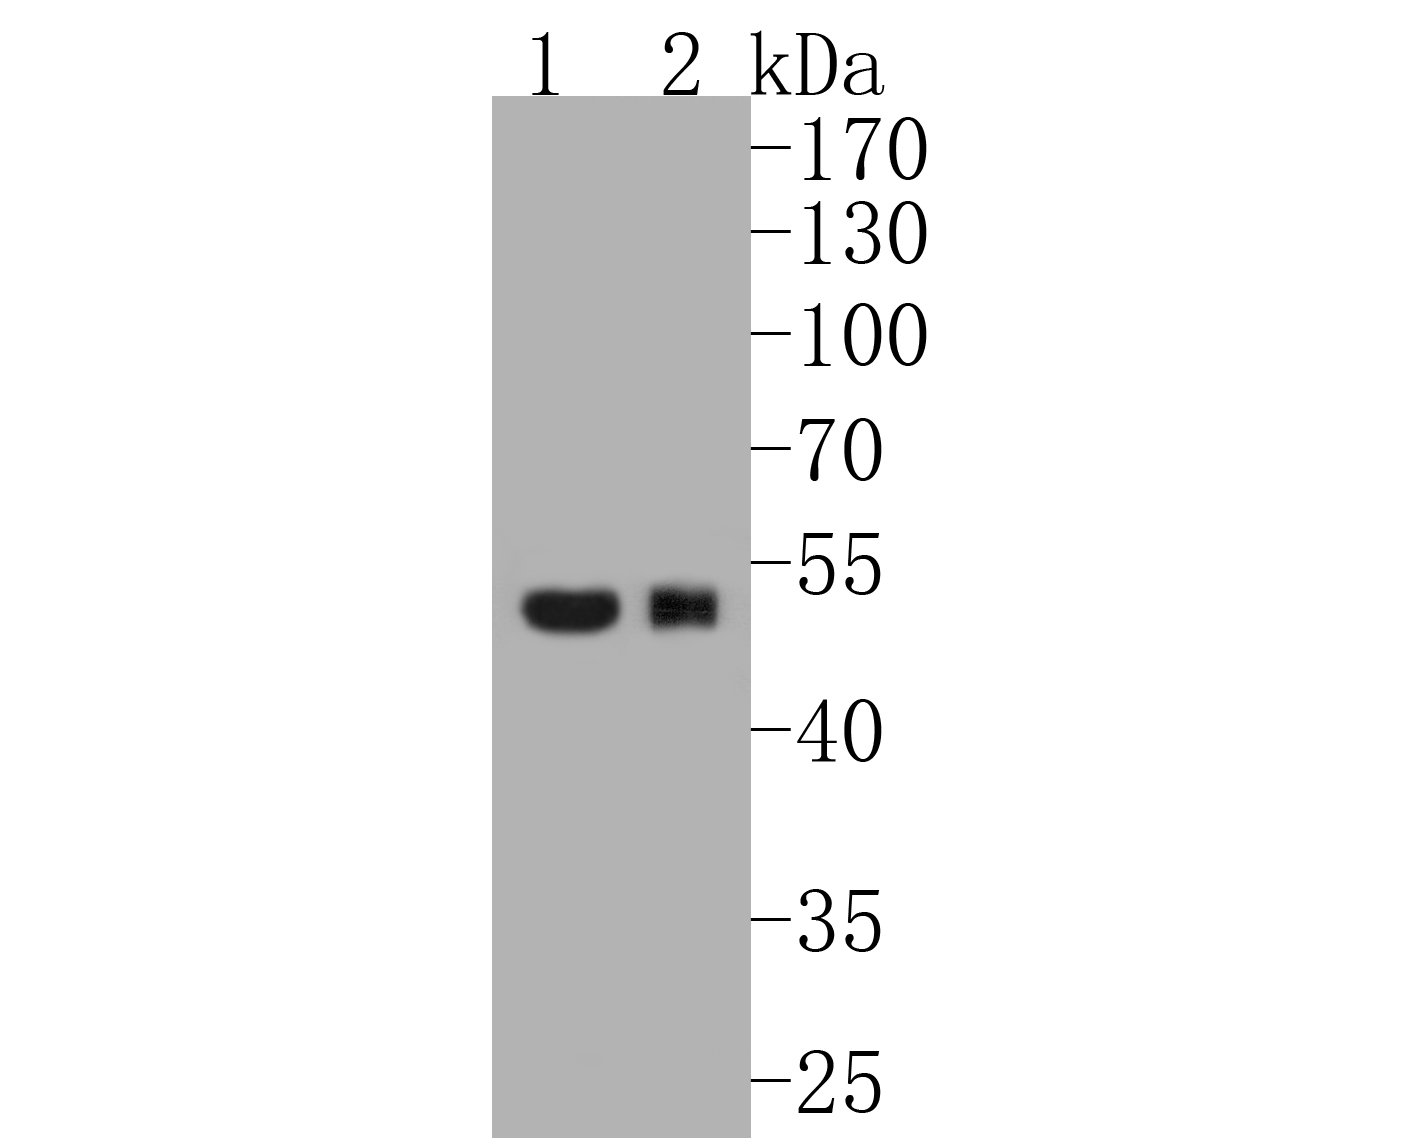 Western blot analysis of Phospho-GATA3 (S308) on different lysates. Proteins were transferred to a PVDF membrane and blocked with 5% BSA in PBS for 1 hour at room temperature. The primary antibody (ET1609-17, 1/500) was used in 5% BSA at room temperature for 2 hours. Goat Anti-Rabbit IgG - HRP Secondary Antibody (HA1001) at 1:5,000 dilution was used for 1 hour at room temperature.<br />  Positive control: <br />  Lane 1: human skin tissue lysate<br />  Lane 2: Jurkat cell lysate